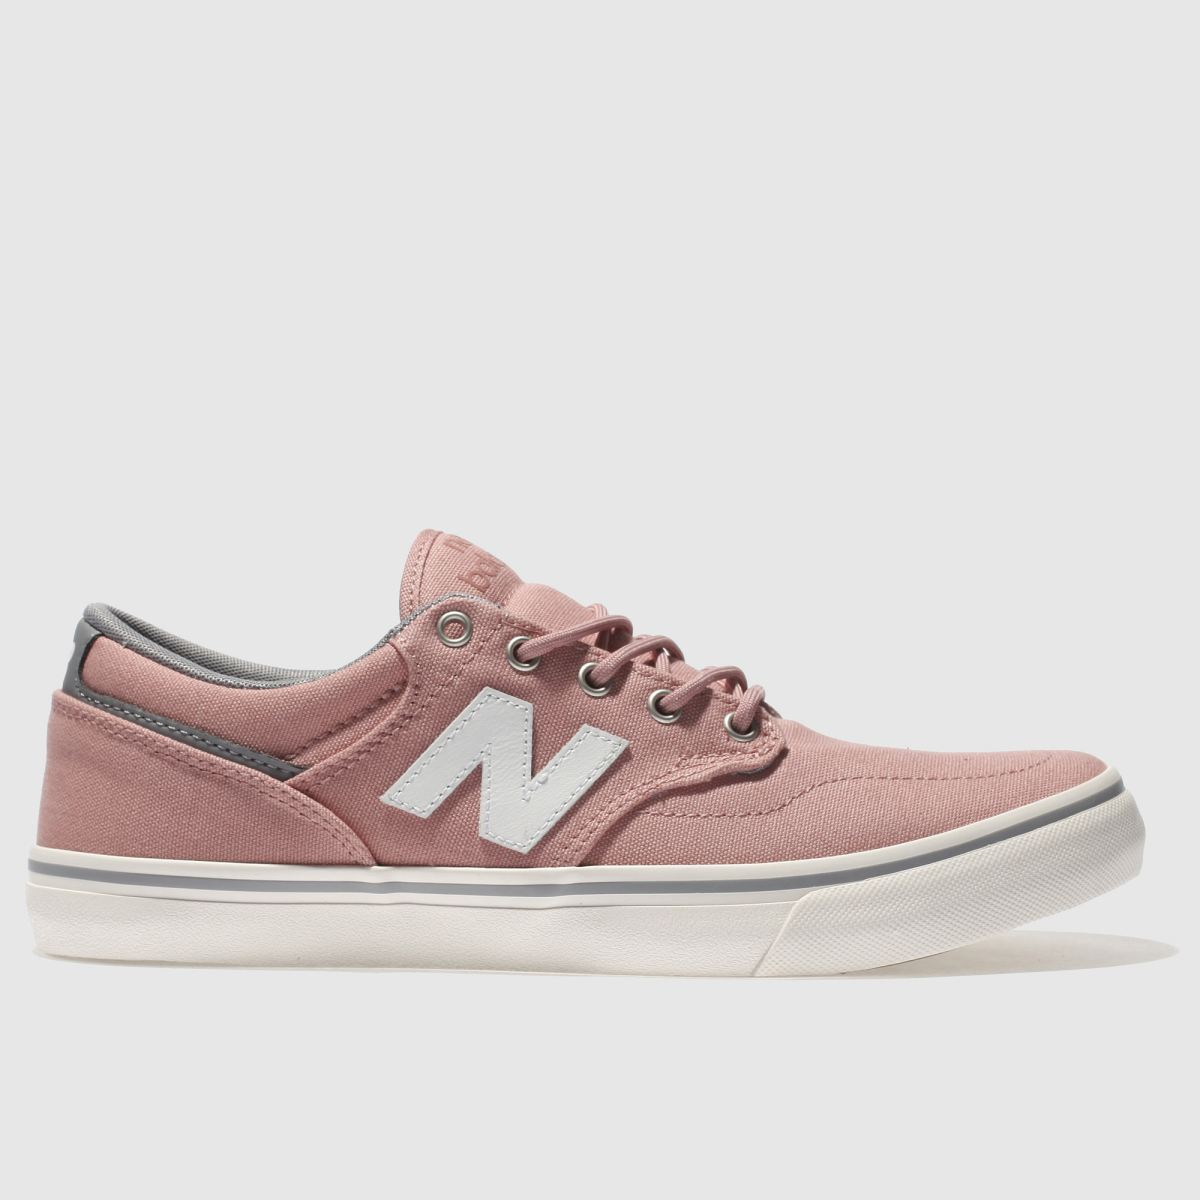 New Balance Pale Pink All Coasts 331 Trainers